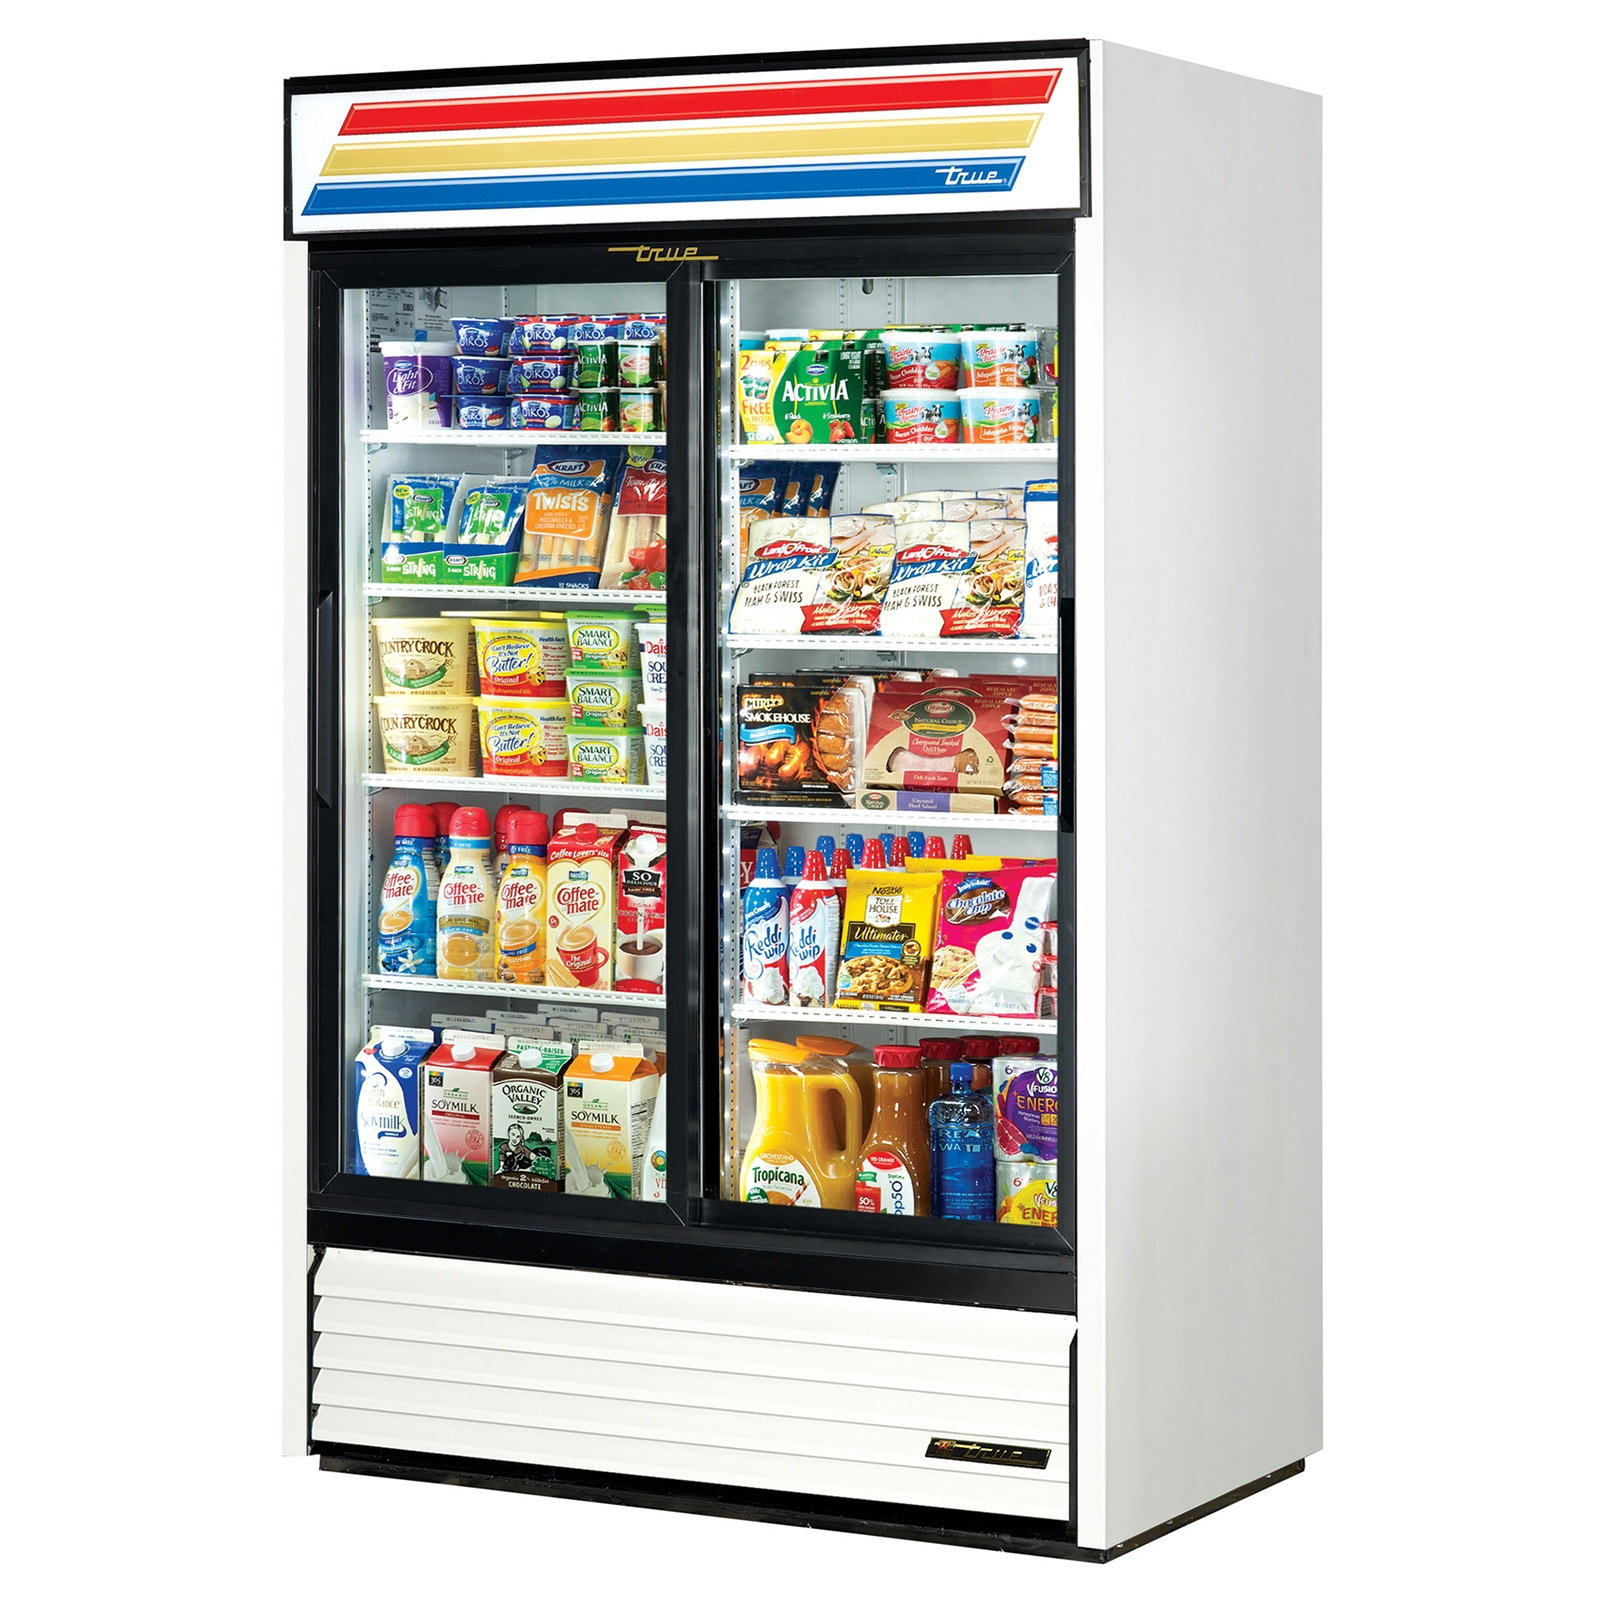 GDM-45-LD – True Display Refrigerator